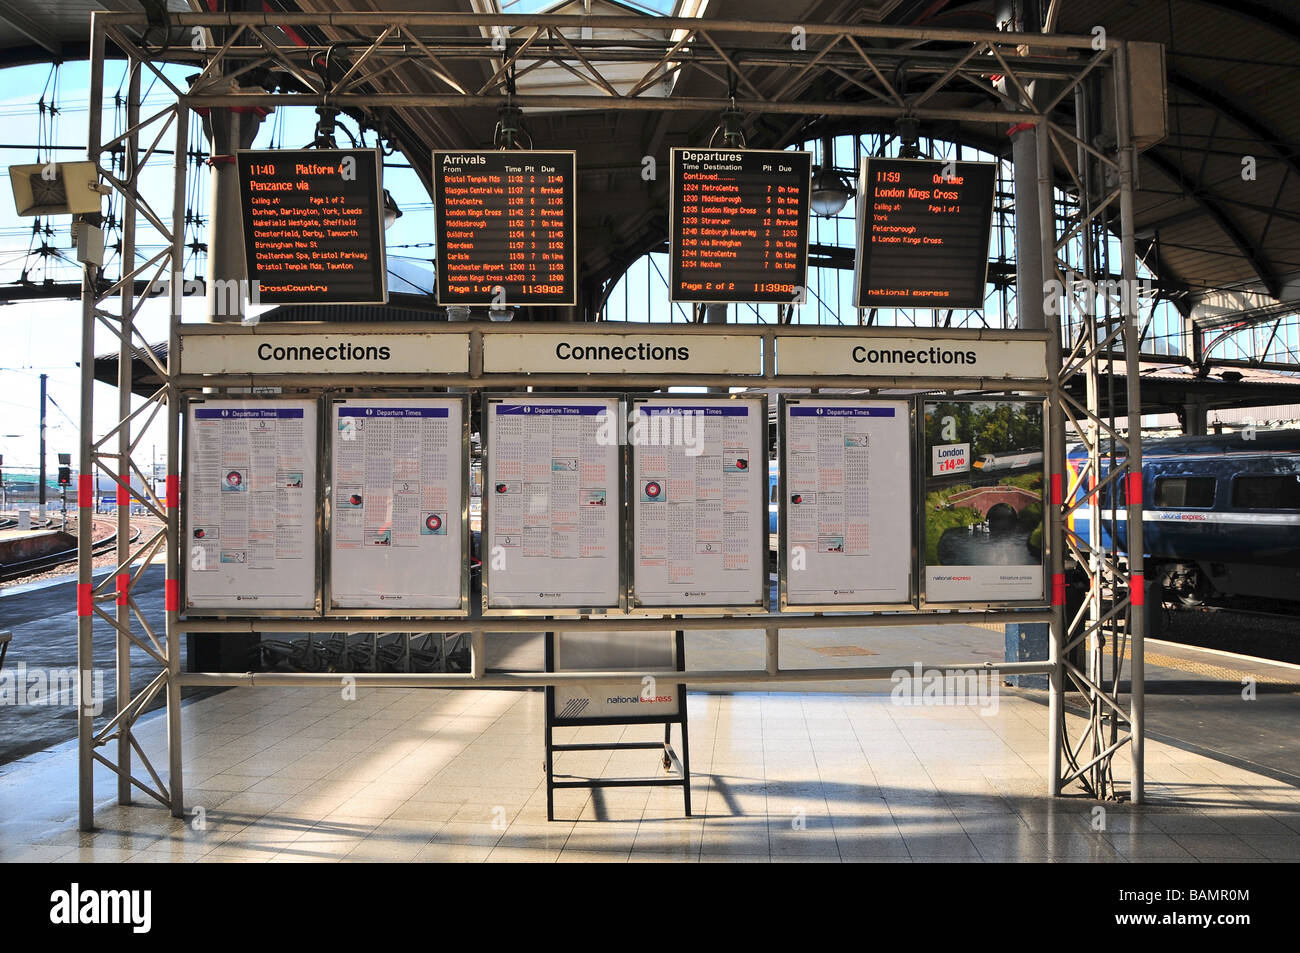 Arrivals and departures displays, Newcastle Central Station, England - Stock Image